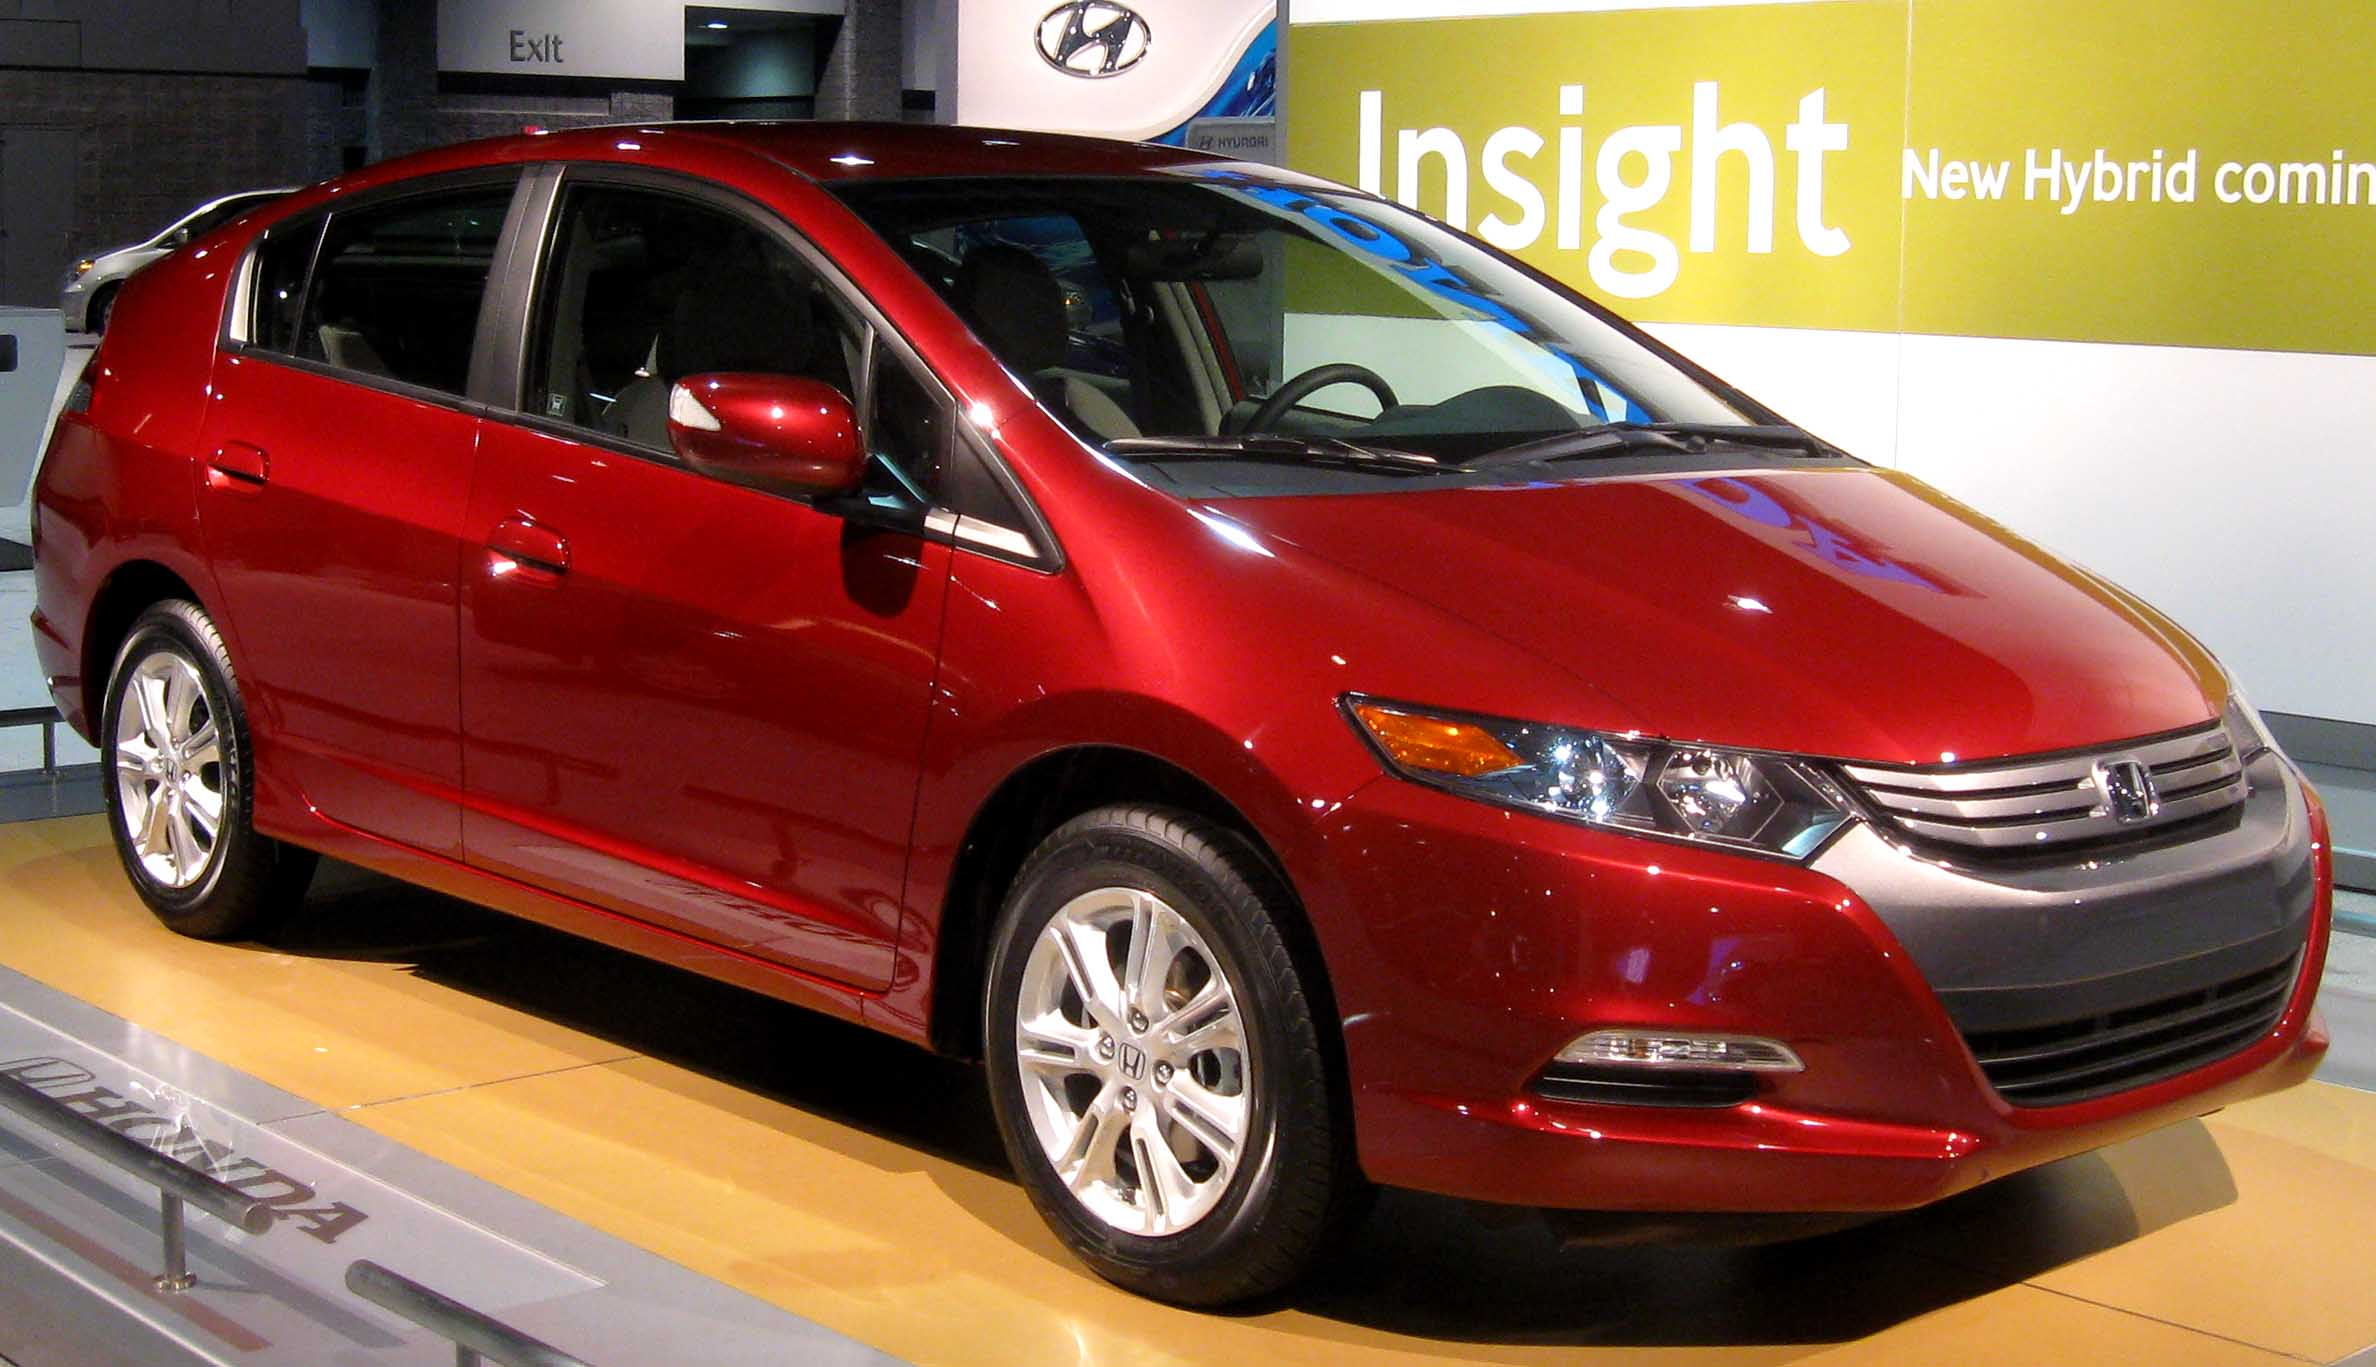 Honda Insight #20